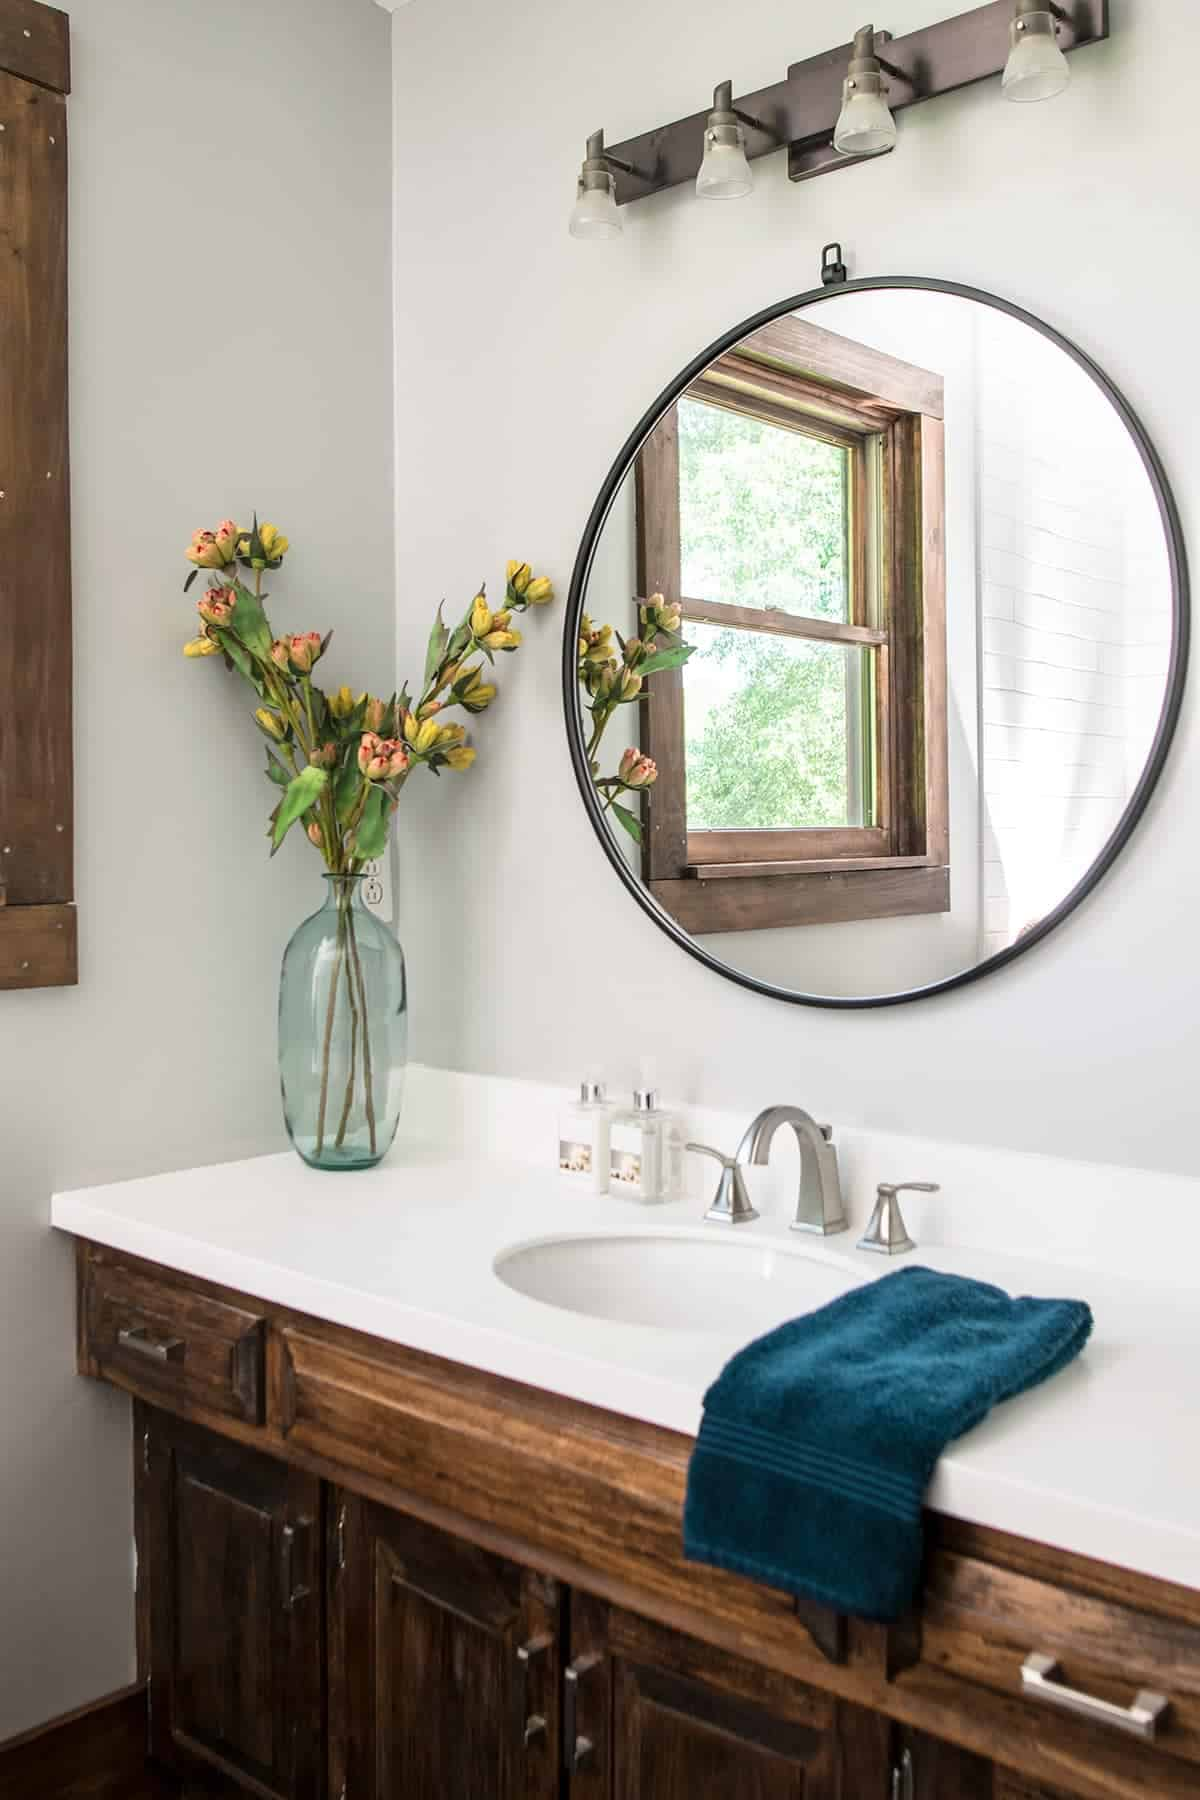 Rustic modern farmhouse bathroom with dark wood cabinets and accents, white countertops and simple neutral decor.